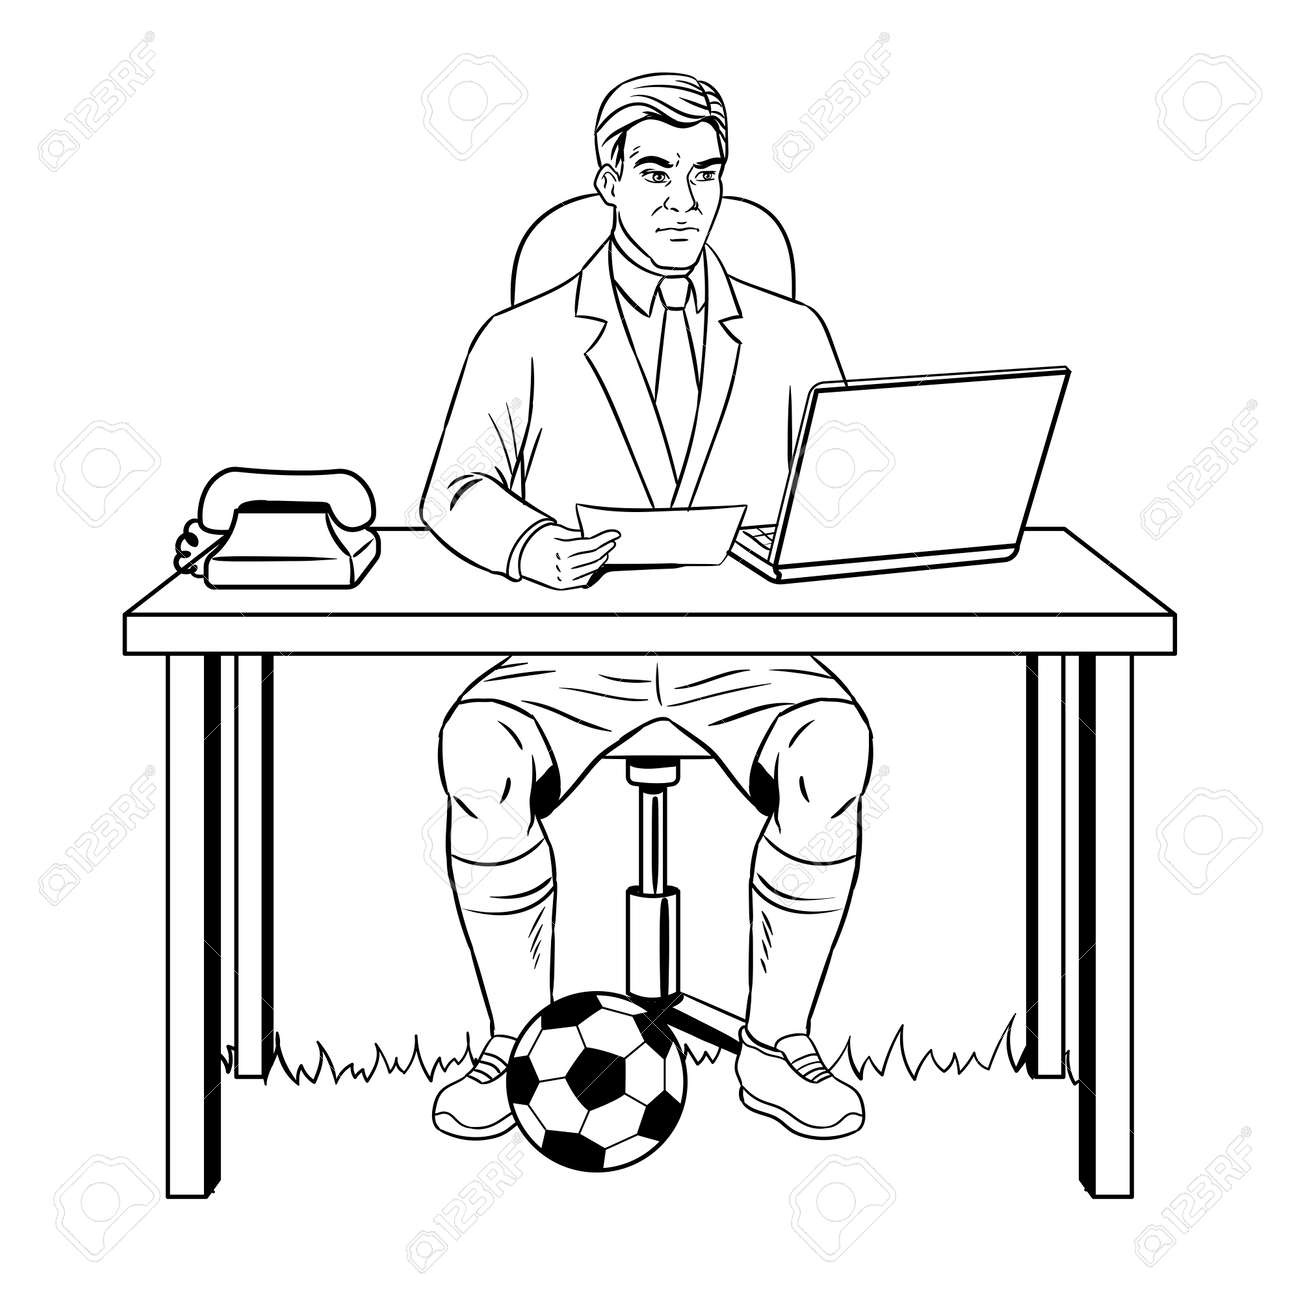 Businessman Soccer Coloring Book Vector Royalty Free Cliparts ...